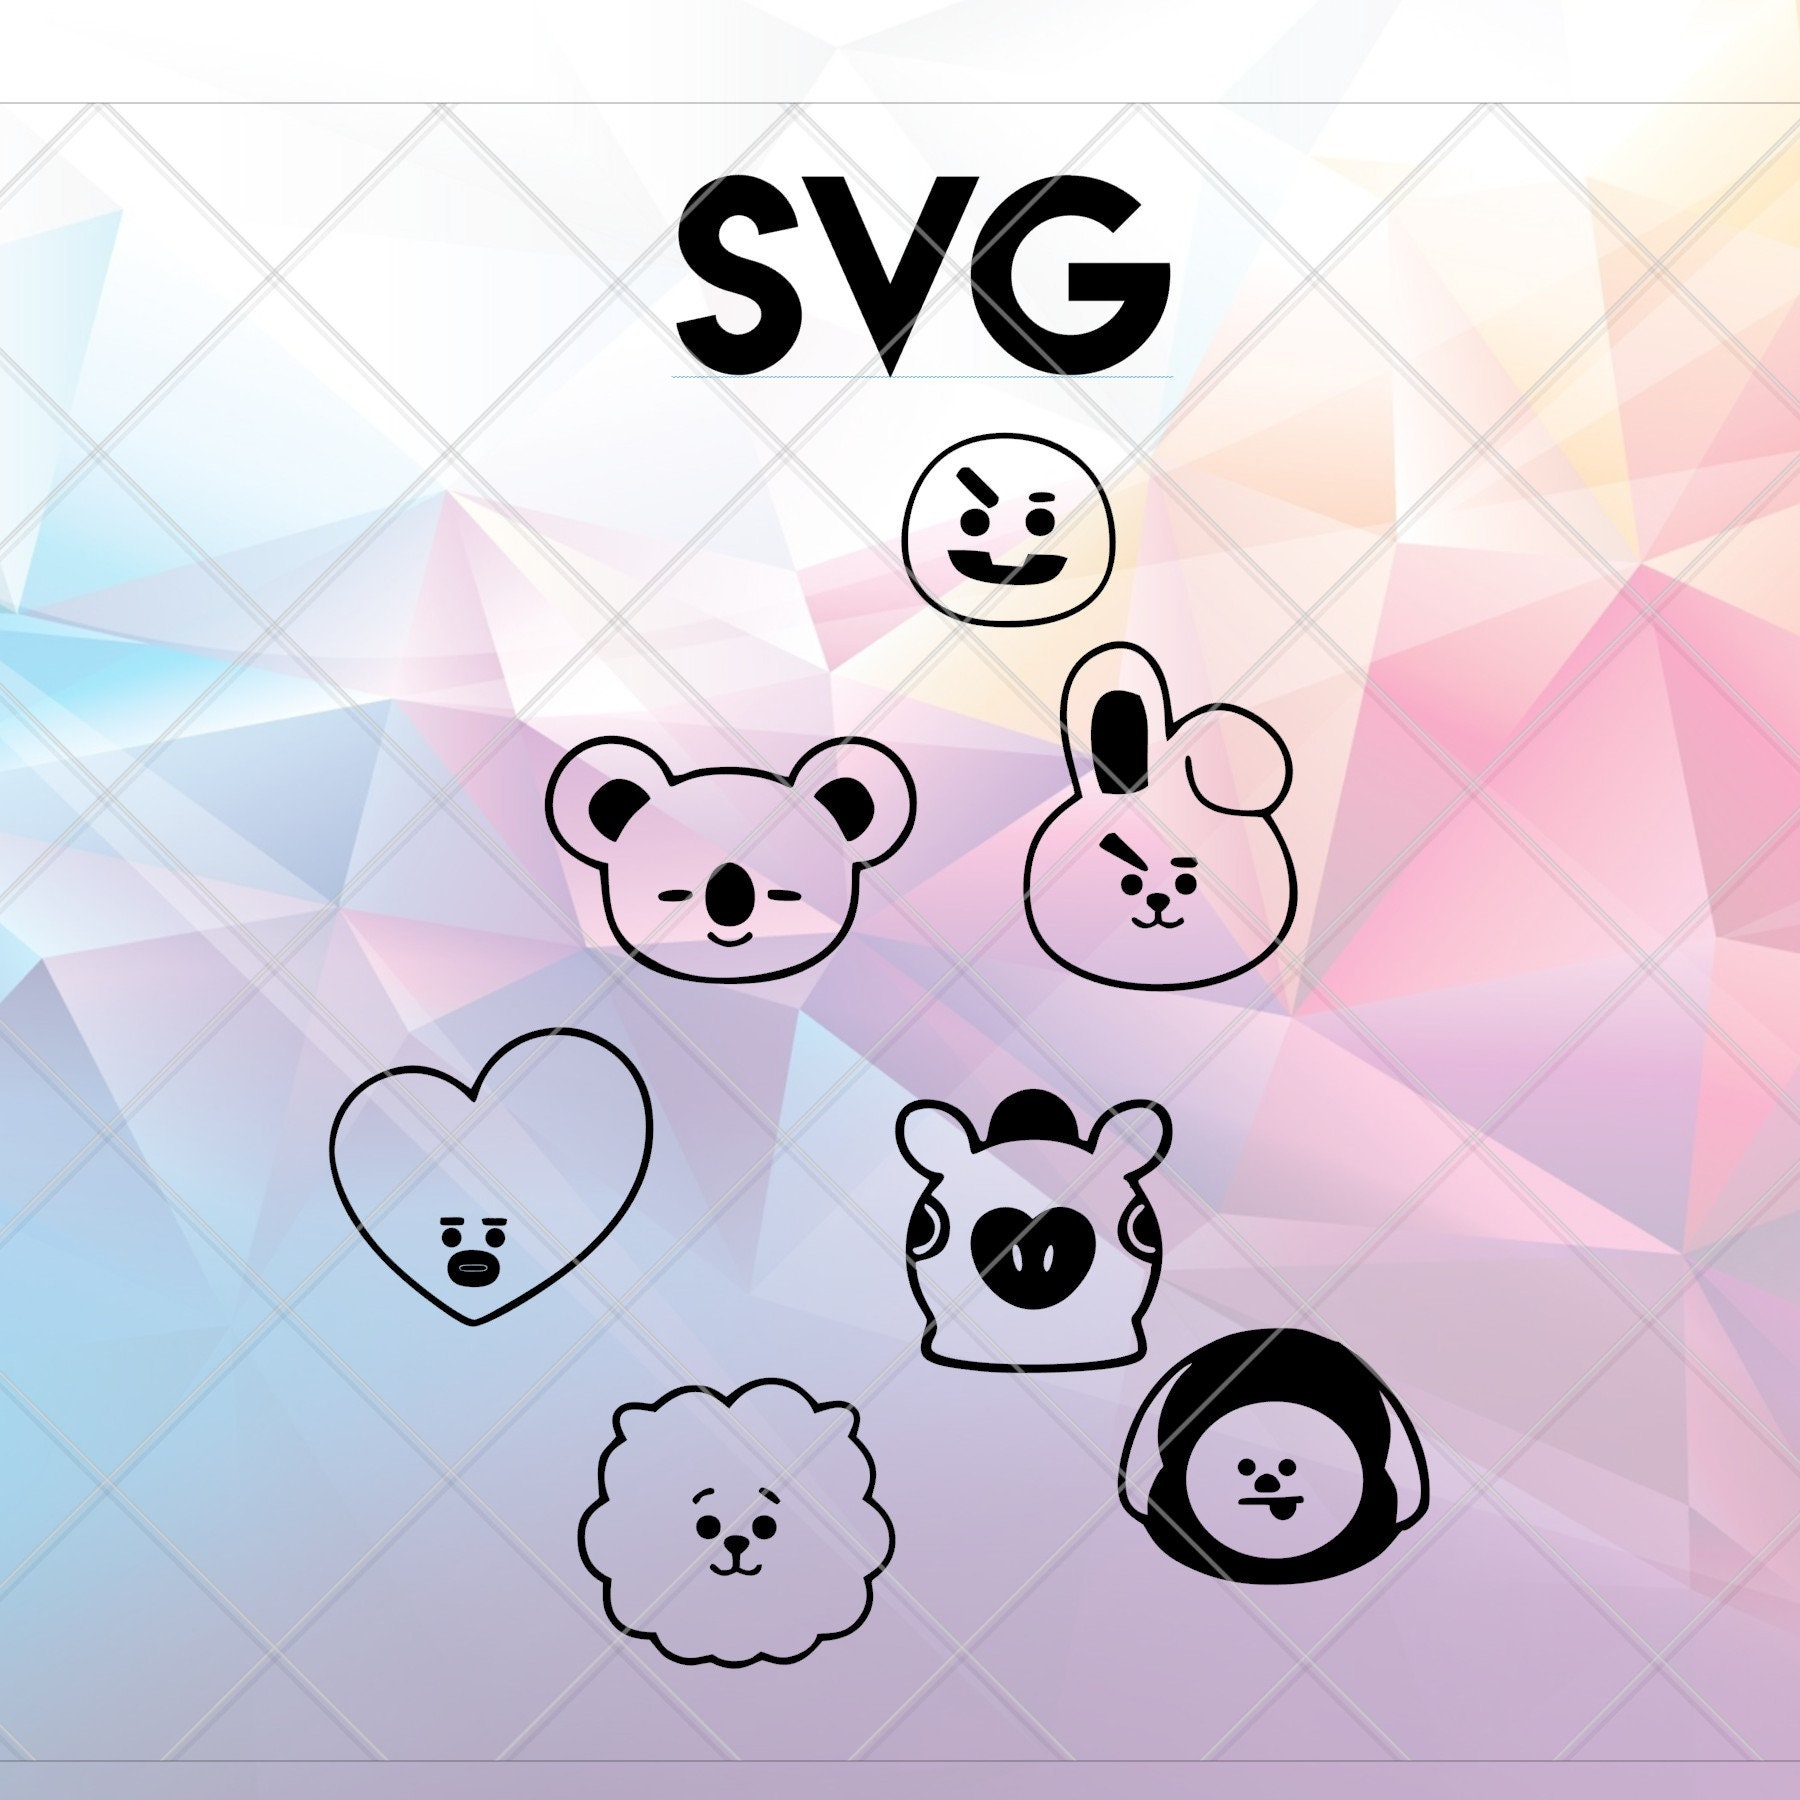 Bts Bt21 Character Faces Svg File File For Cricut Amp Cameo